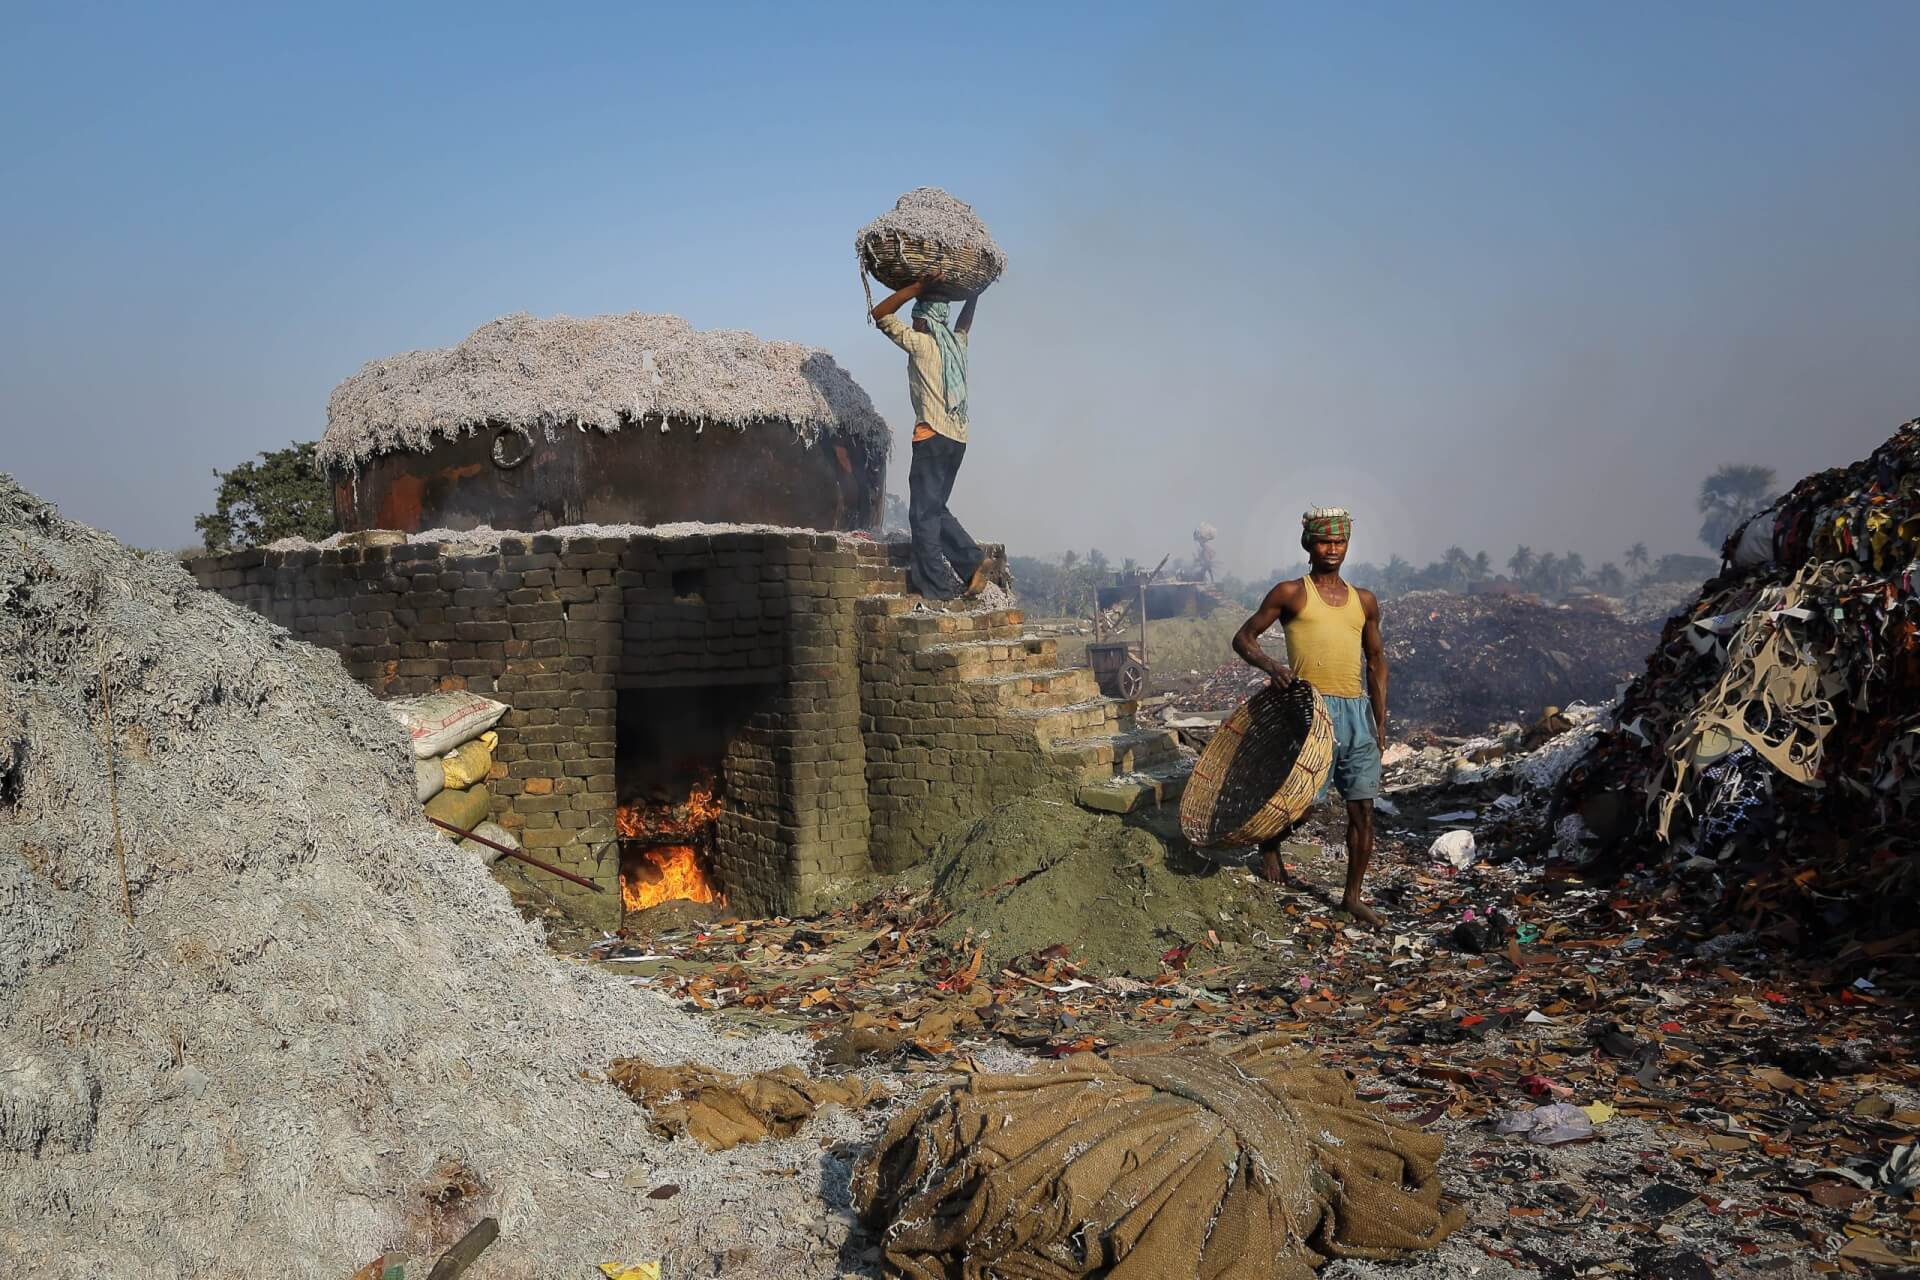 Fertiliser is manufactured from the waste of the leather-making process in Kolkata, India. At night a long low flame will turn this leather waste into fertiliser, enabling it to be used for agriculture at a very low cost, by Sandipani Chattopadhyay